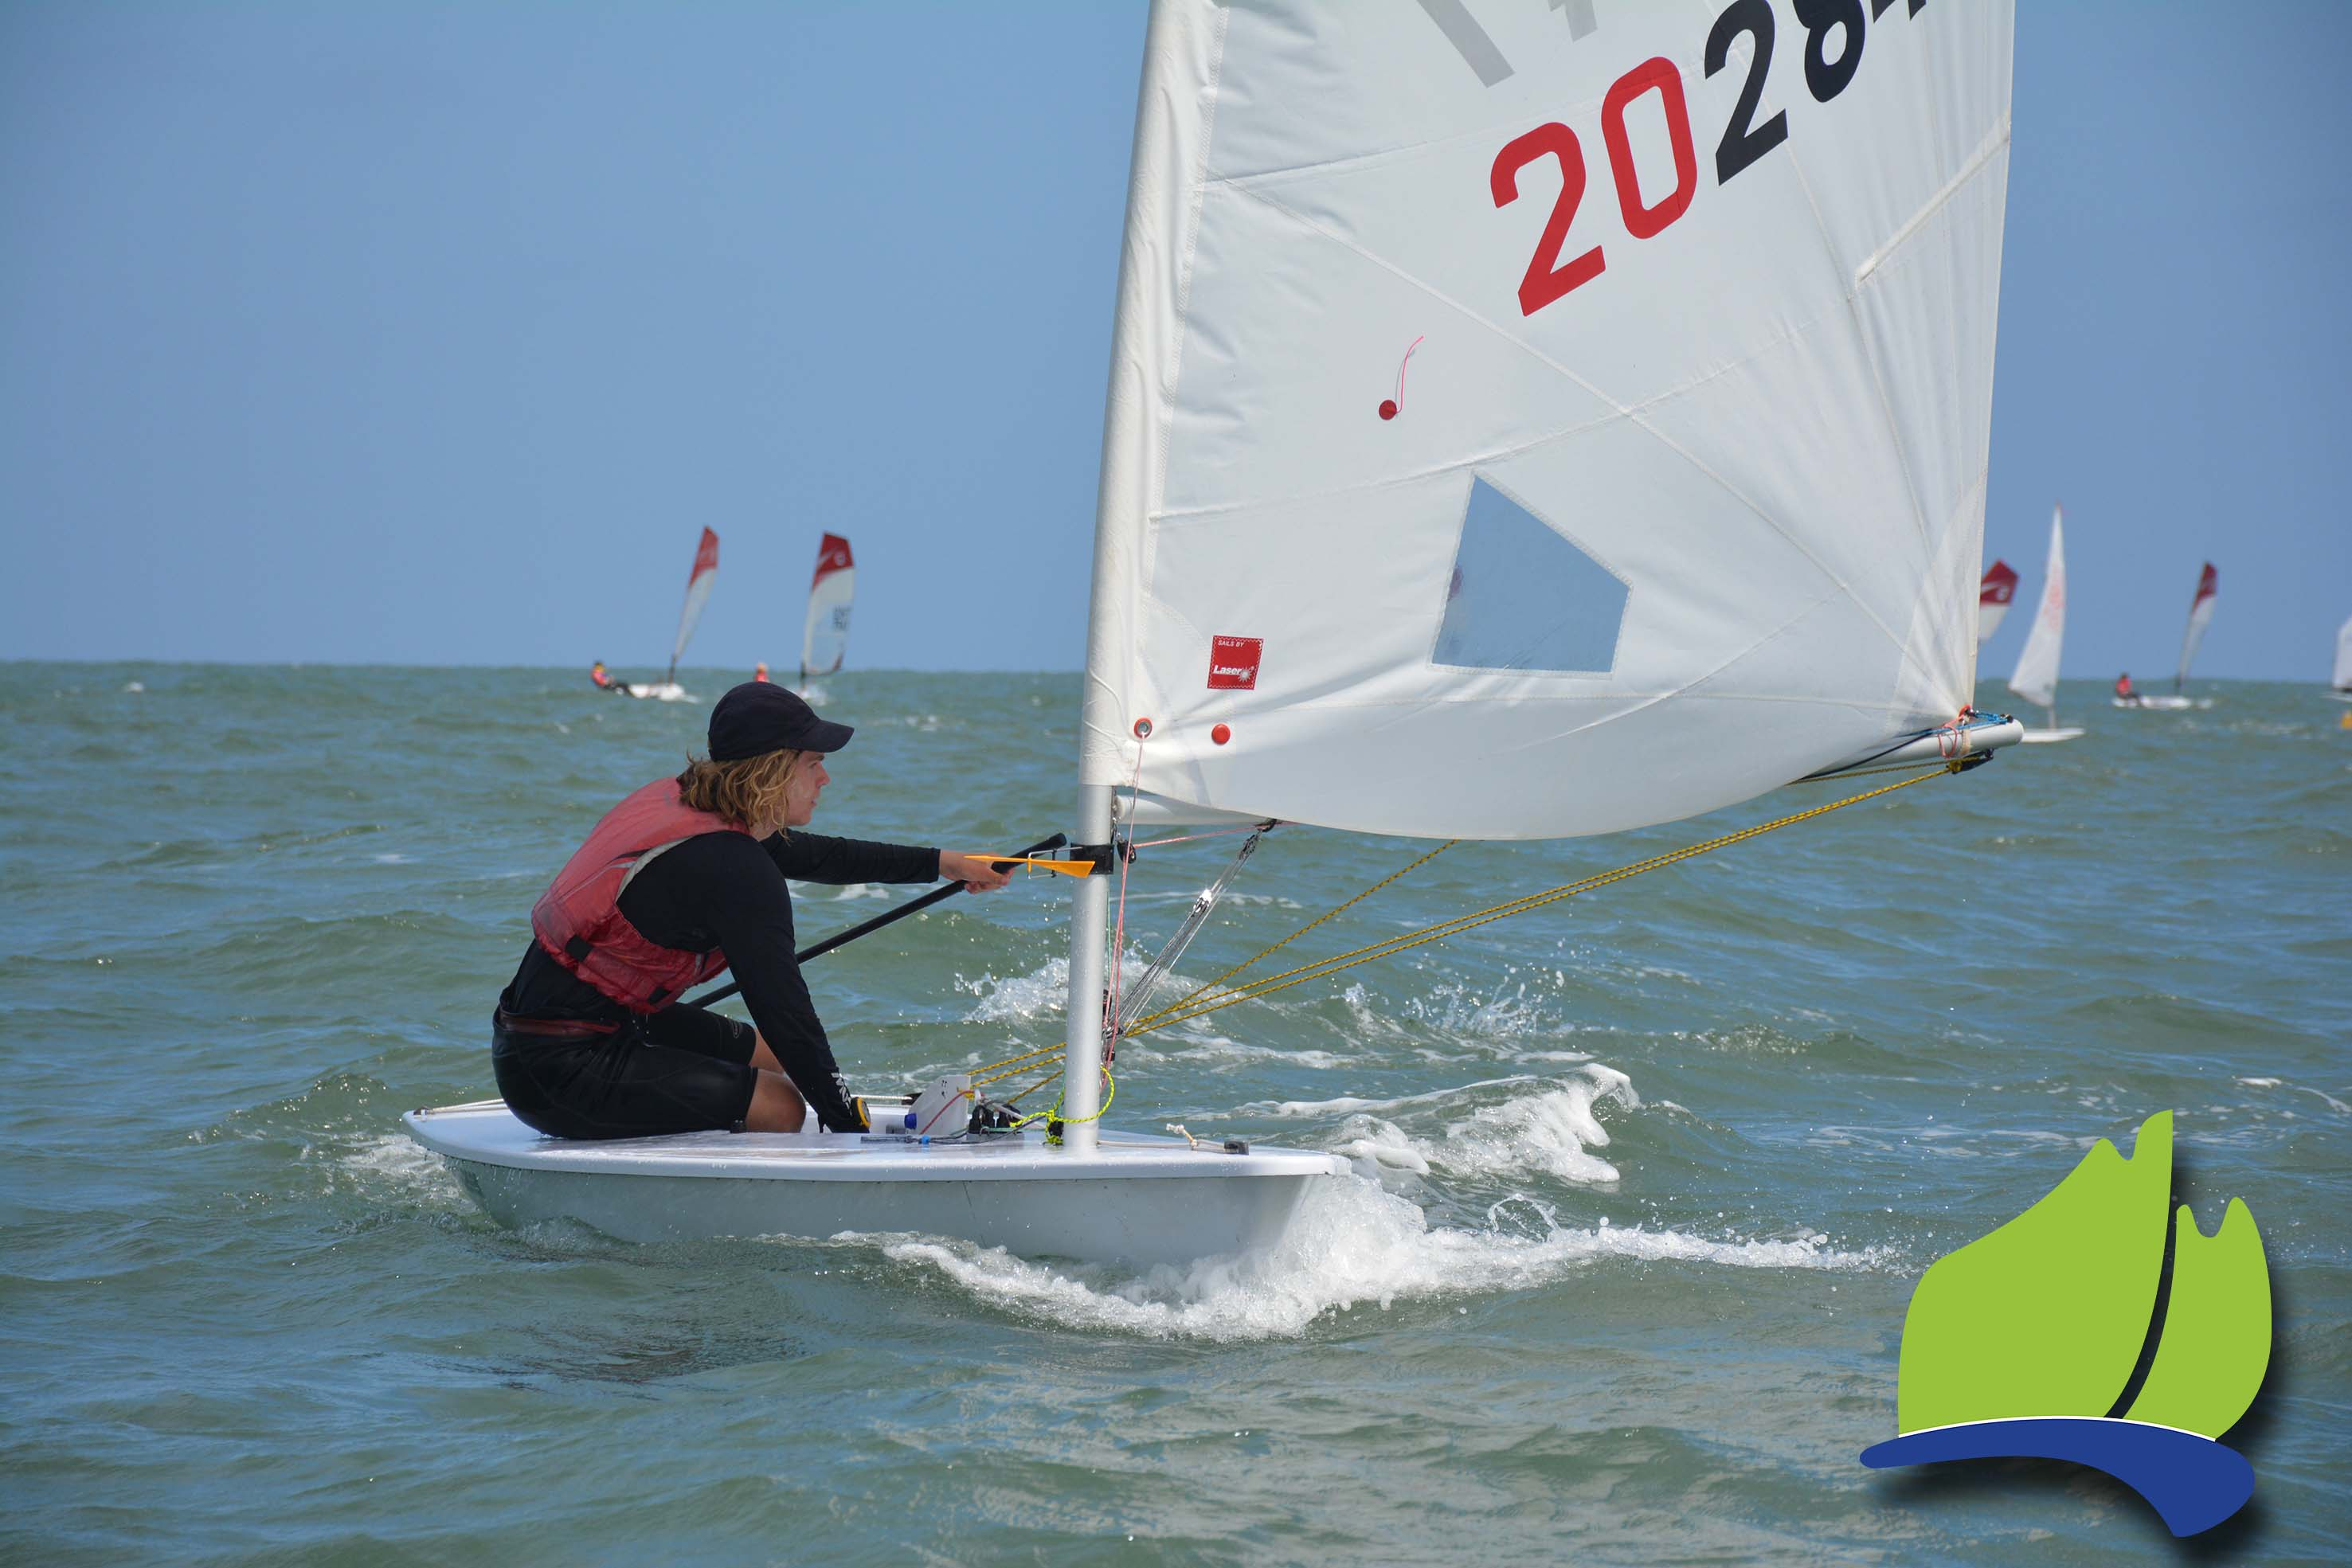 John Gordon was the overall winner in the Laser Radial fleet at the weekend.